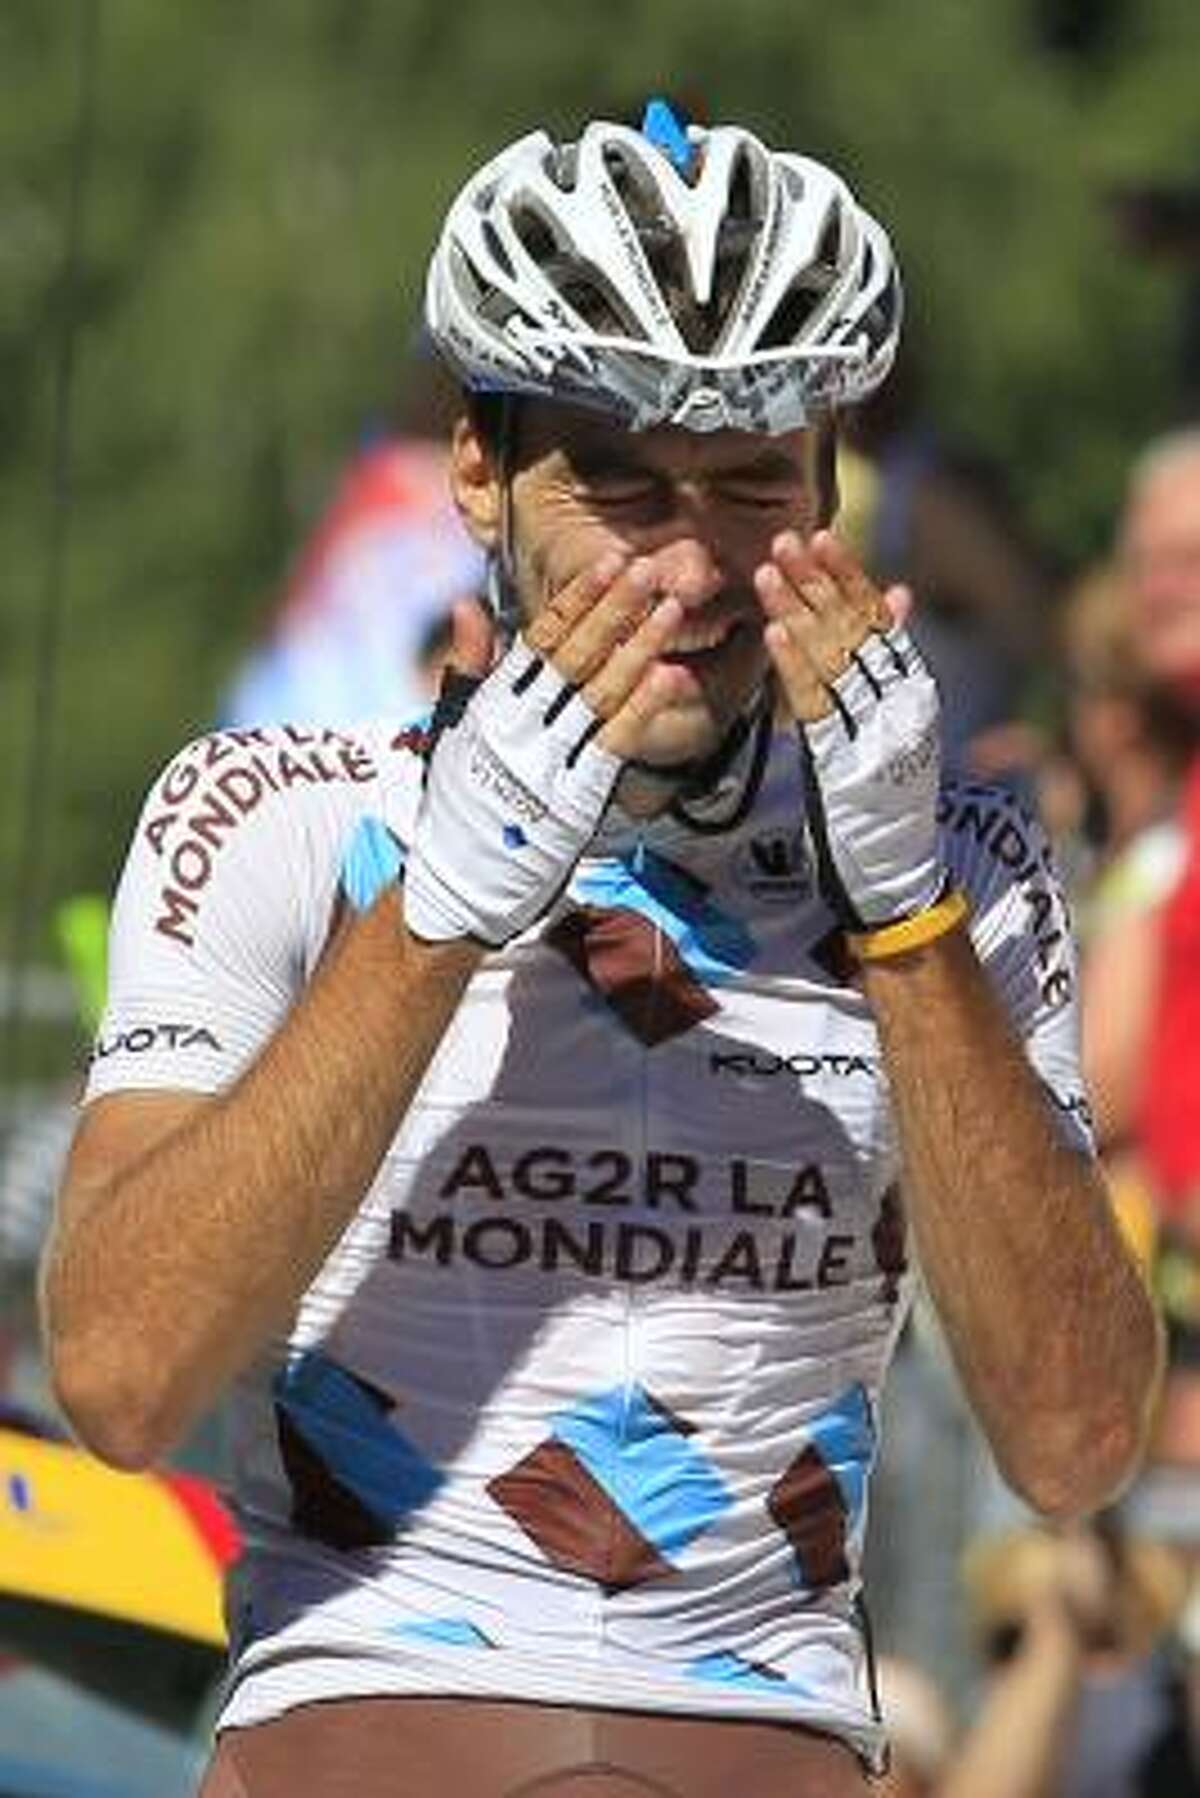 Christophe Riblon of France crosses the finish line to win the 14th stage.